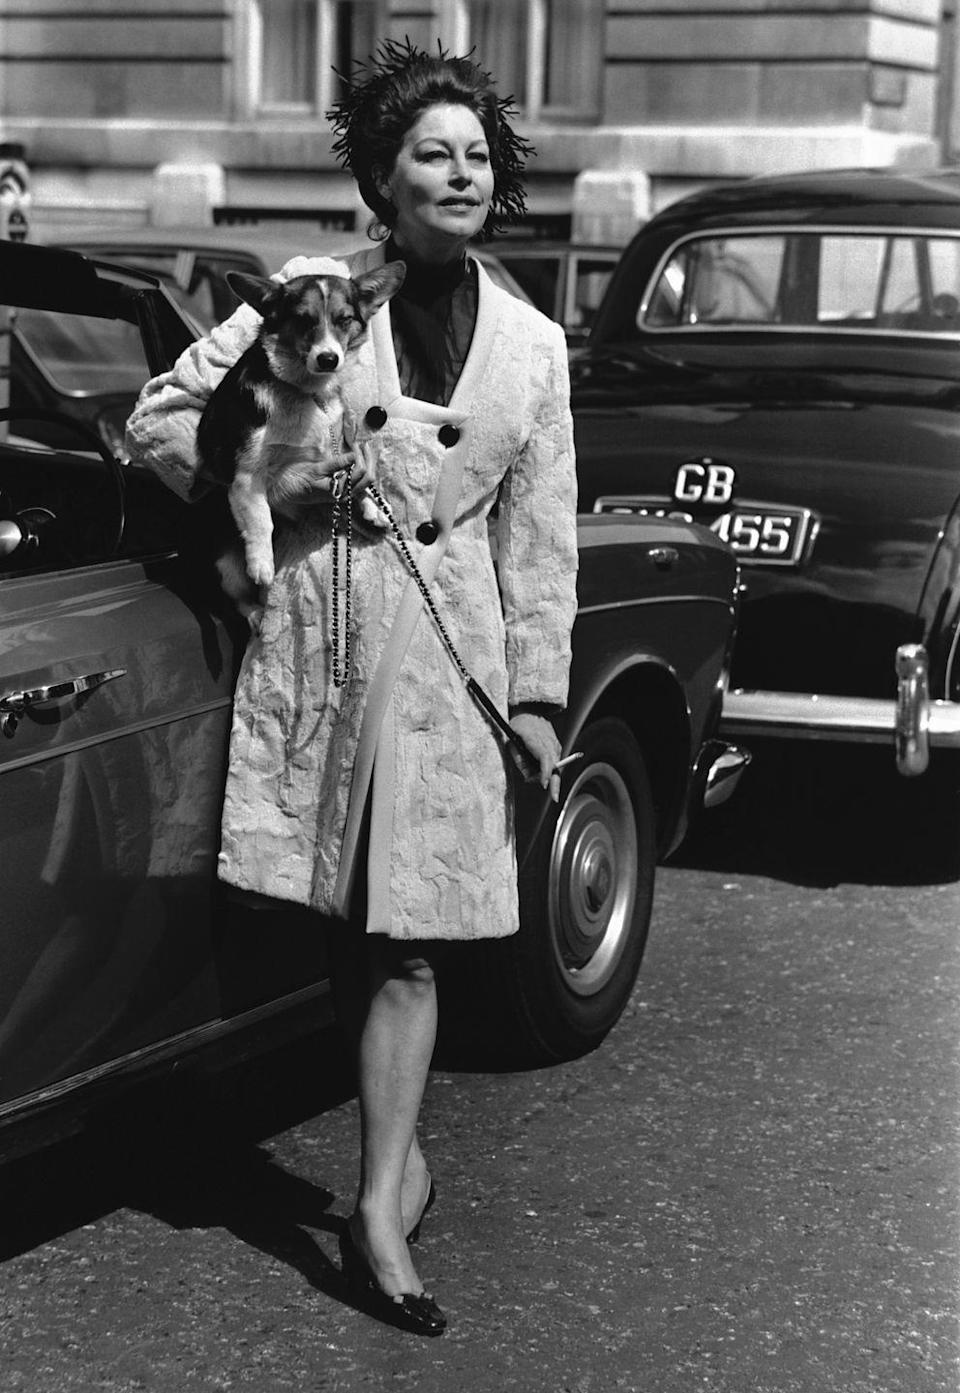 <p>Photographed in London where she moved in the late 1960s and remained until her death in 1990, Gardner poses on a street with one of her corgis in a fabulously cut overcoat. </p>